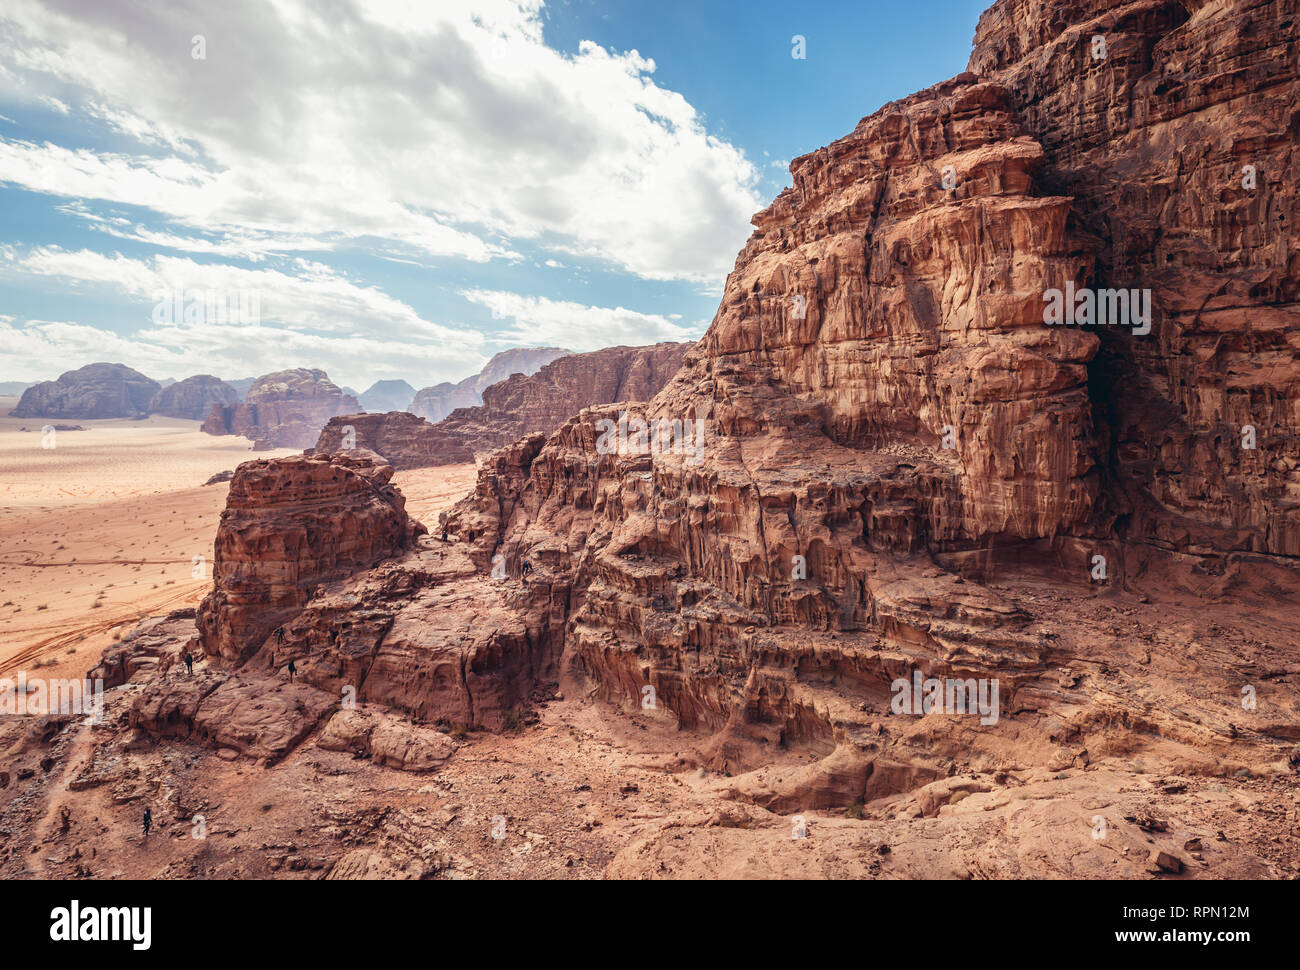 Rocks above so called Lawrence House in Wadi Rum valley also called Valley of the Moon in Jordan - Stock Image